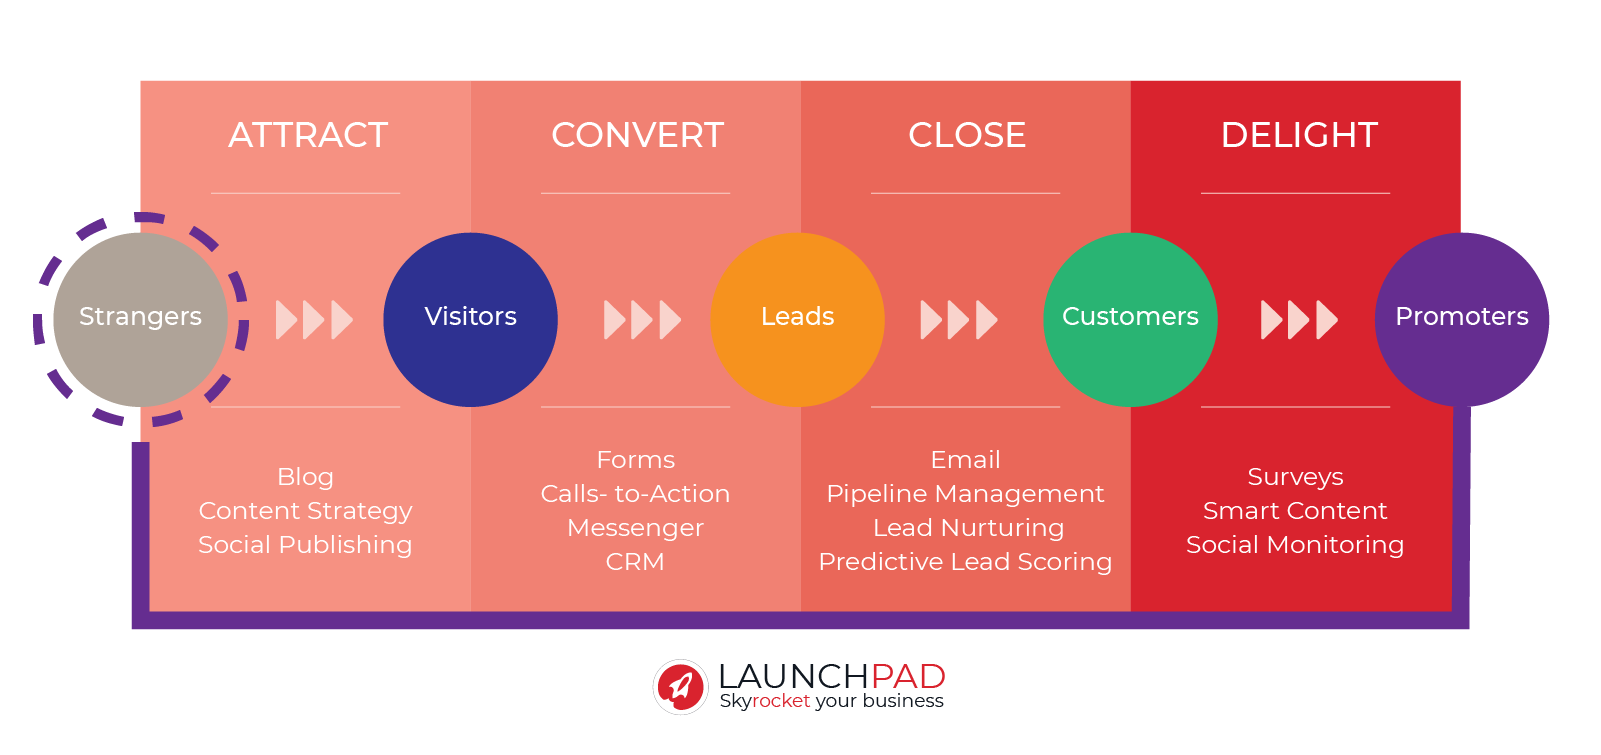 Inbound Marketing - Launchpad v2